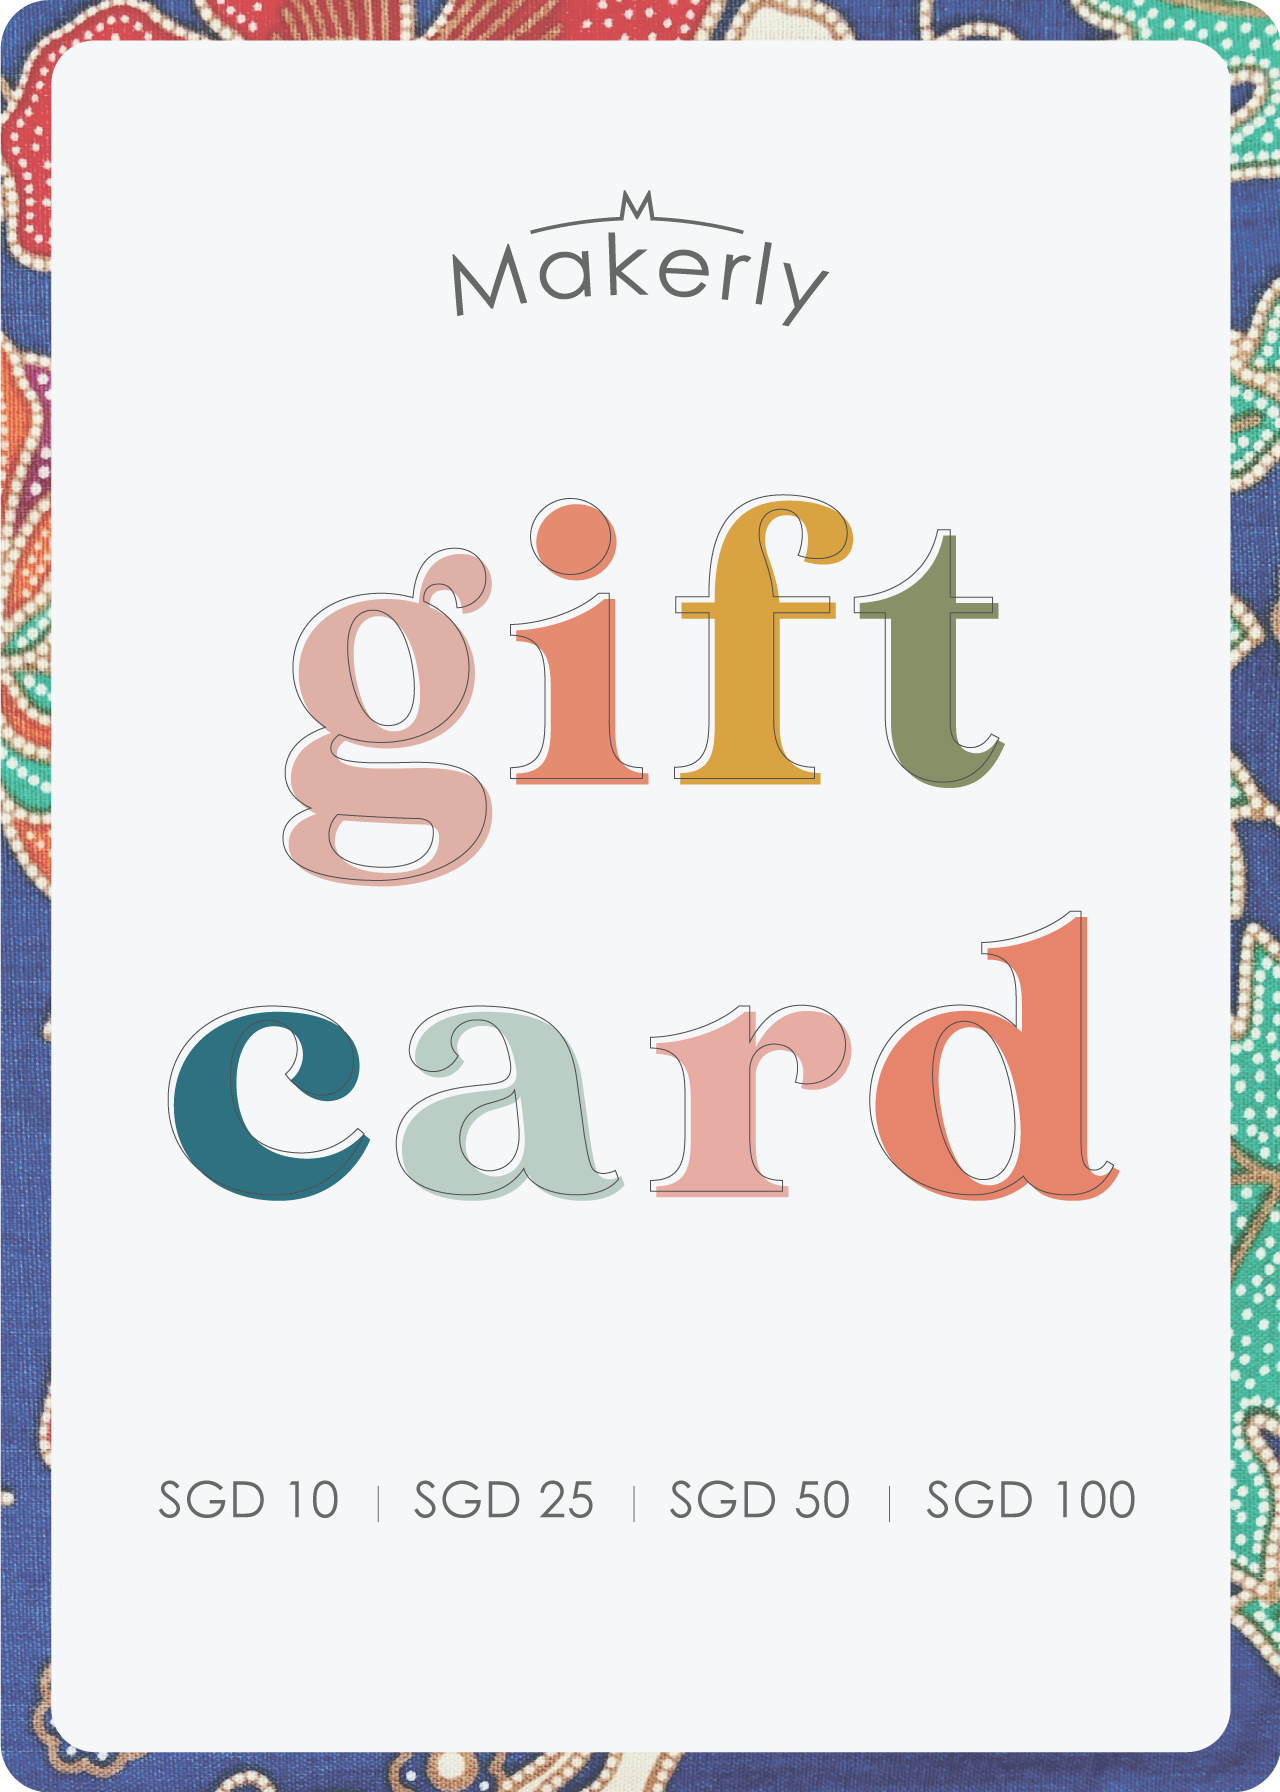 MAKERLY Digital Gift Card